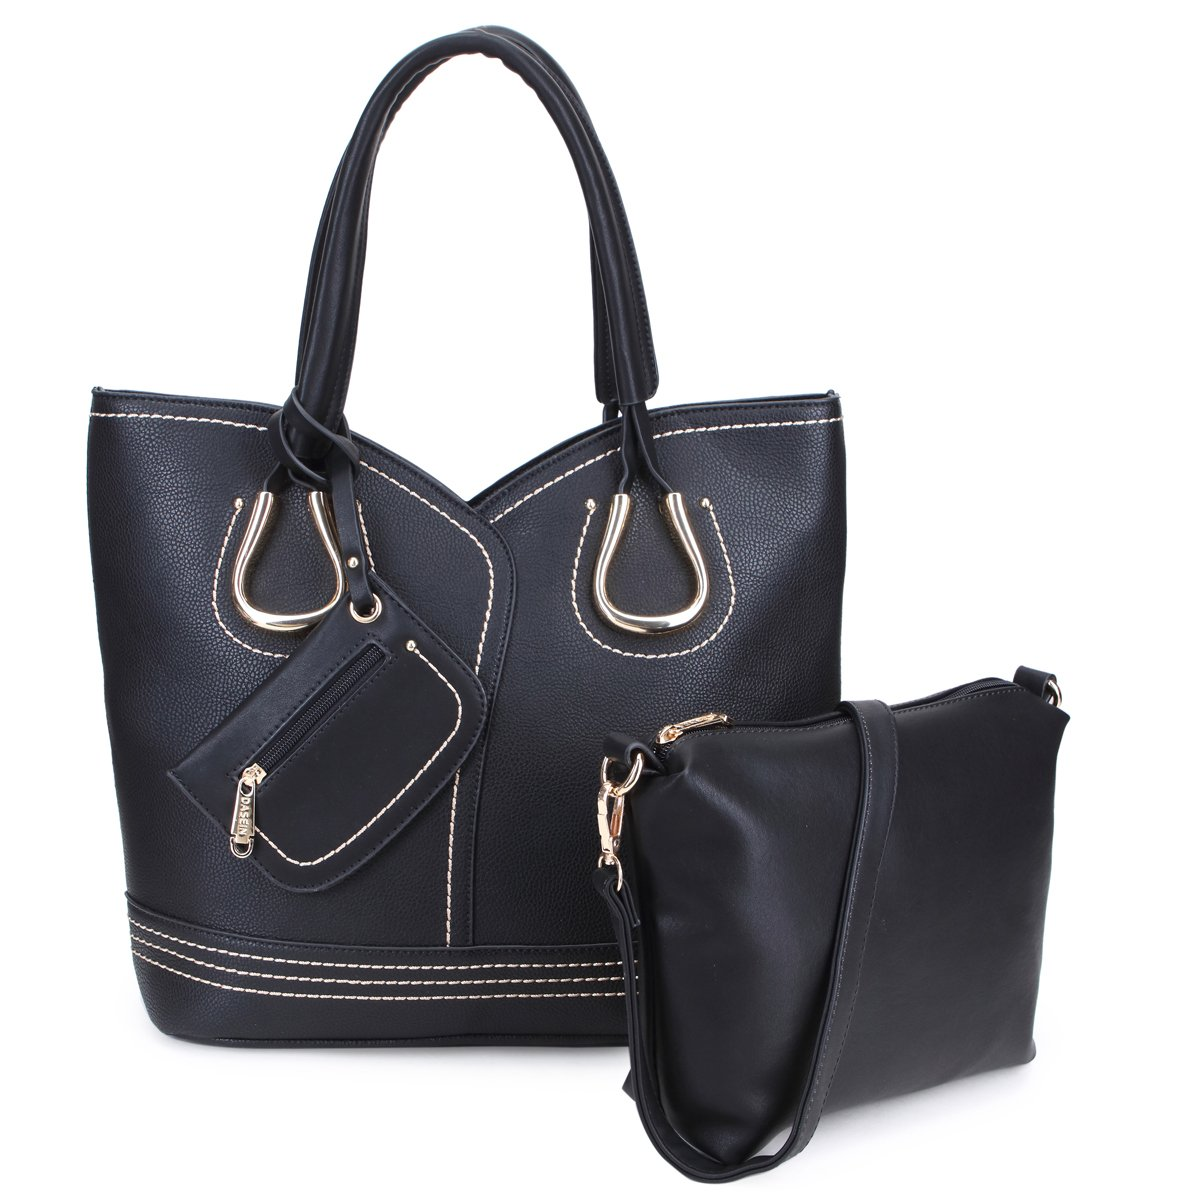 Women Tote Handbag 3 Pieces Set Leather Hobo Shoulder Bag Satchel Purse Black